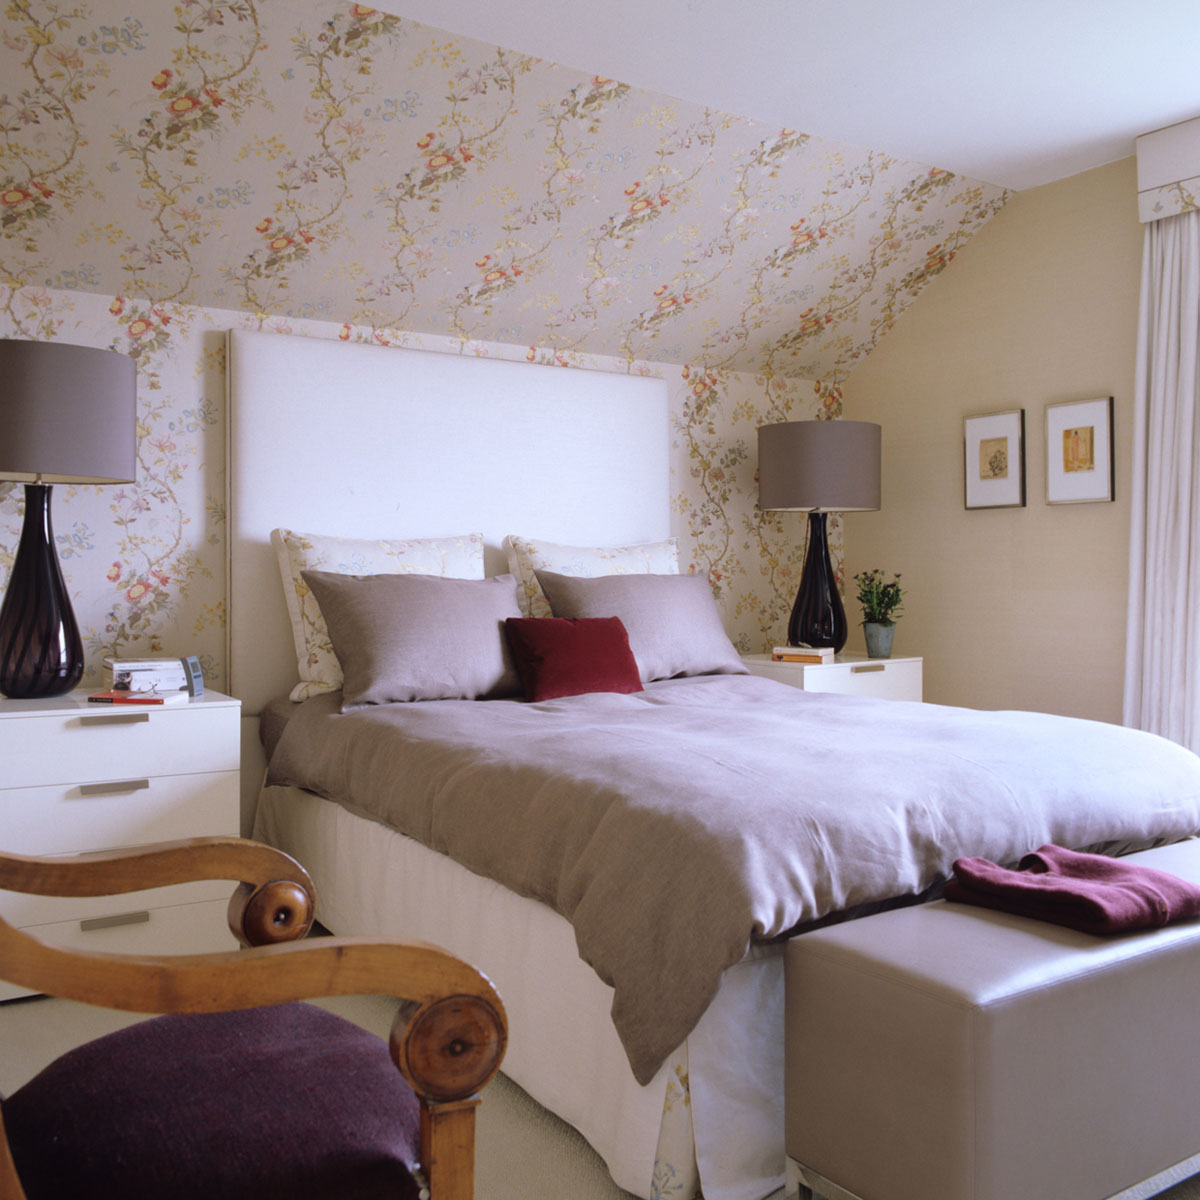 Attic ~Bedroom with Floral Wallpaper